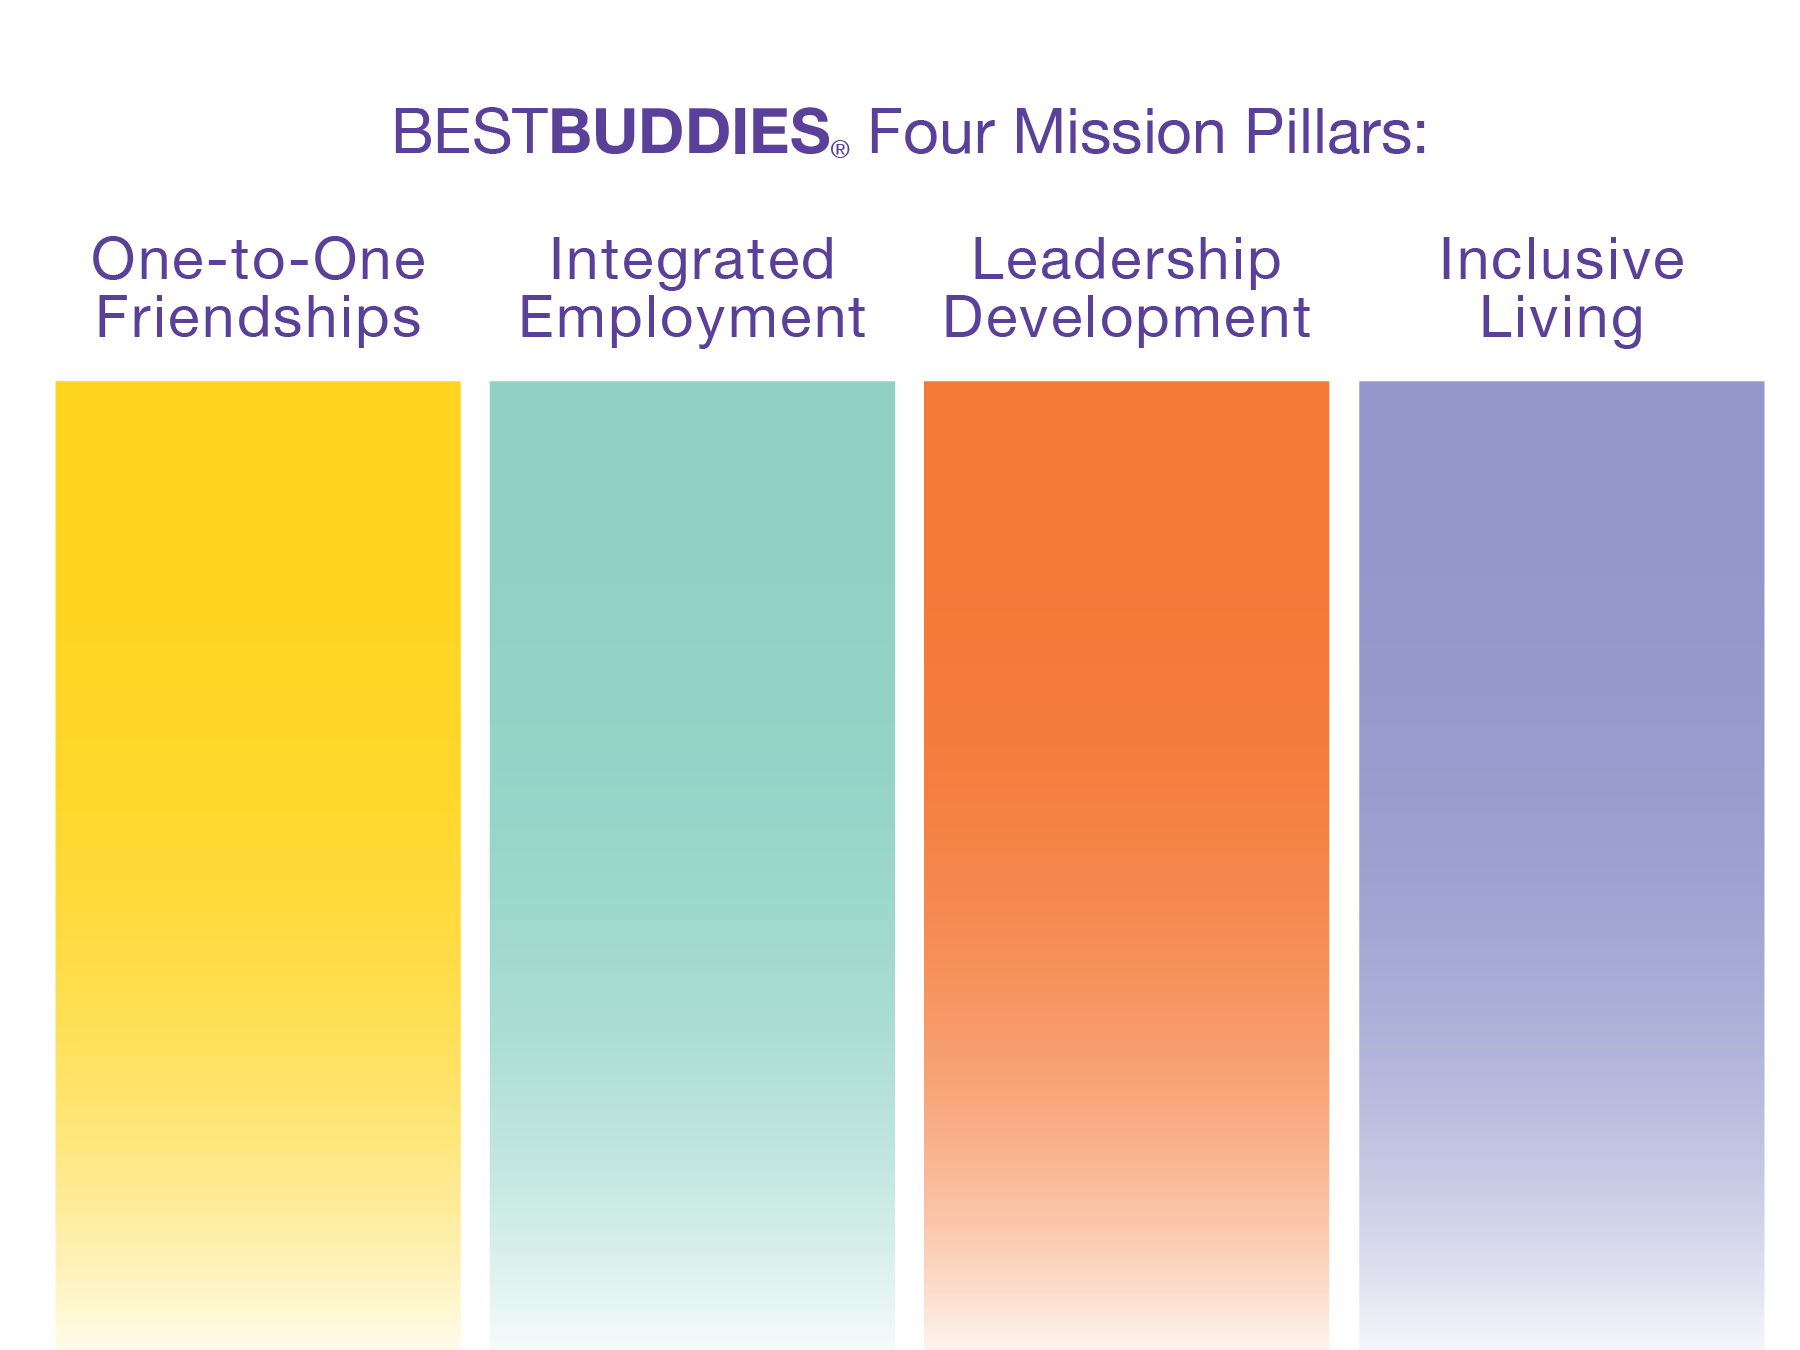 Mission pillar graphic: one-to-one friendships, integrated employment, leadership development, and inclusive living